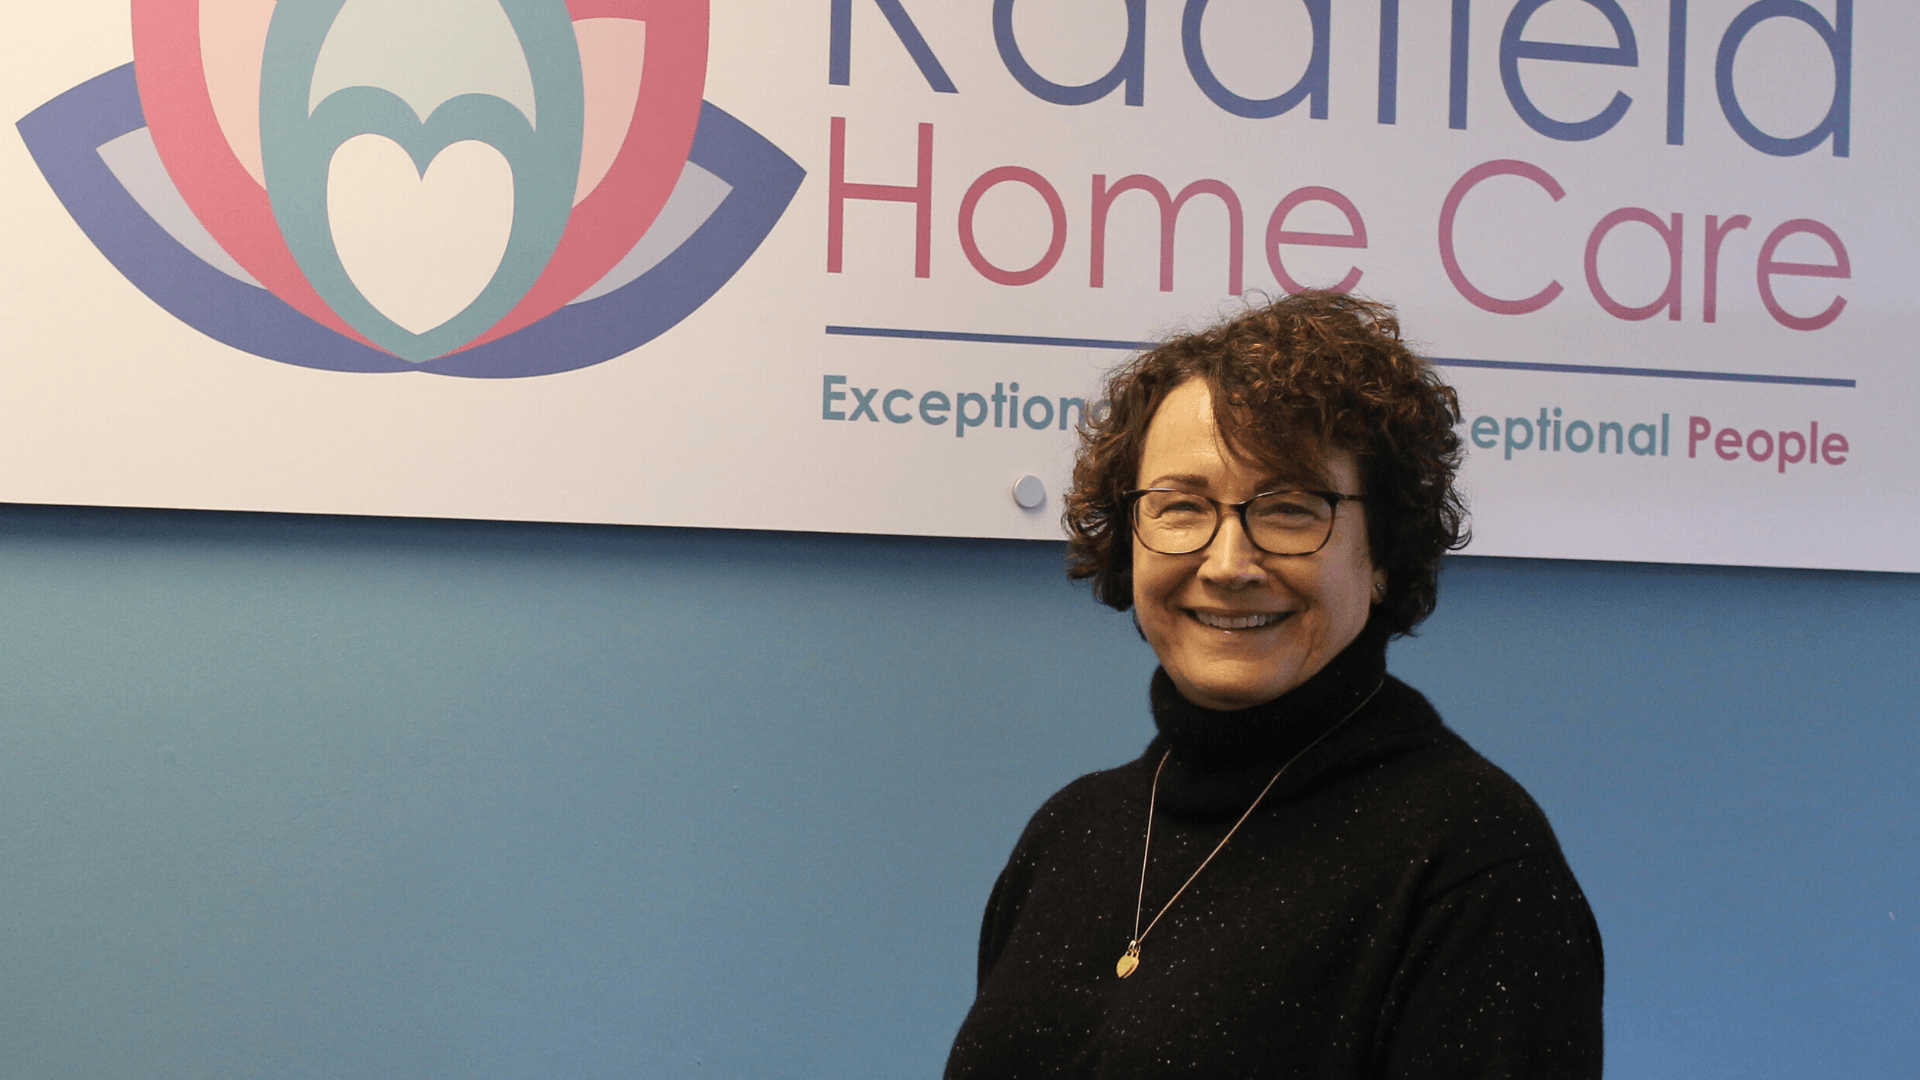 Radfield Home Care welcomes its latest franchise partner in Milton Keynes